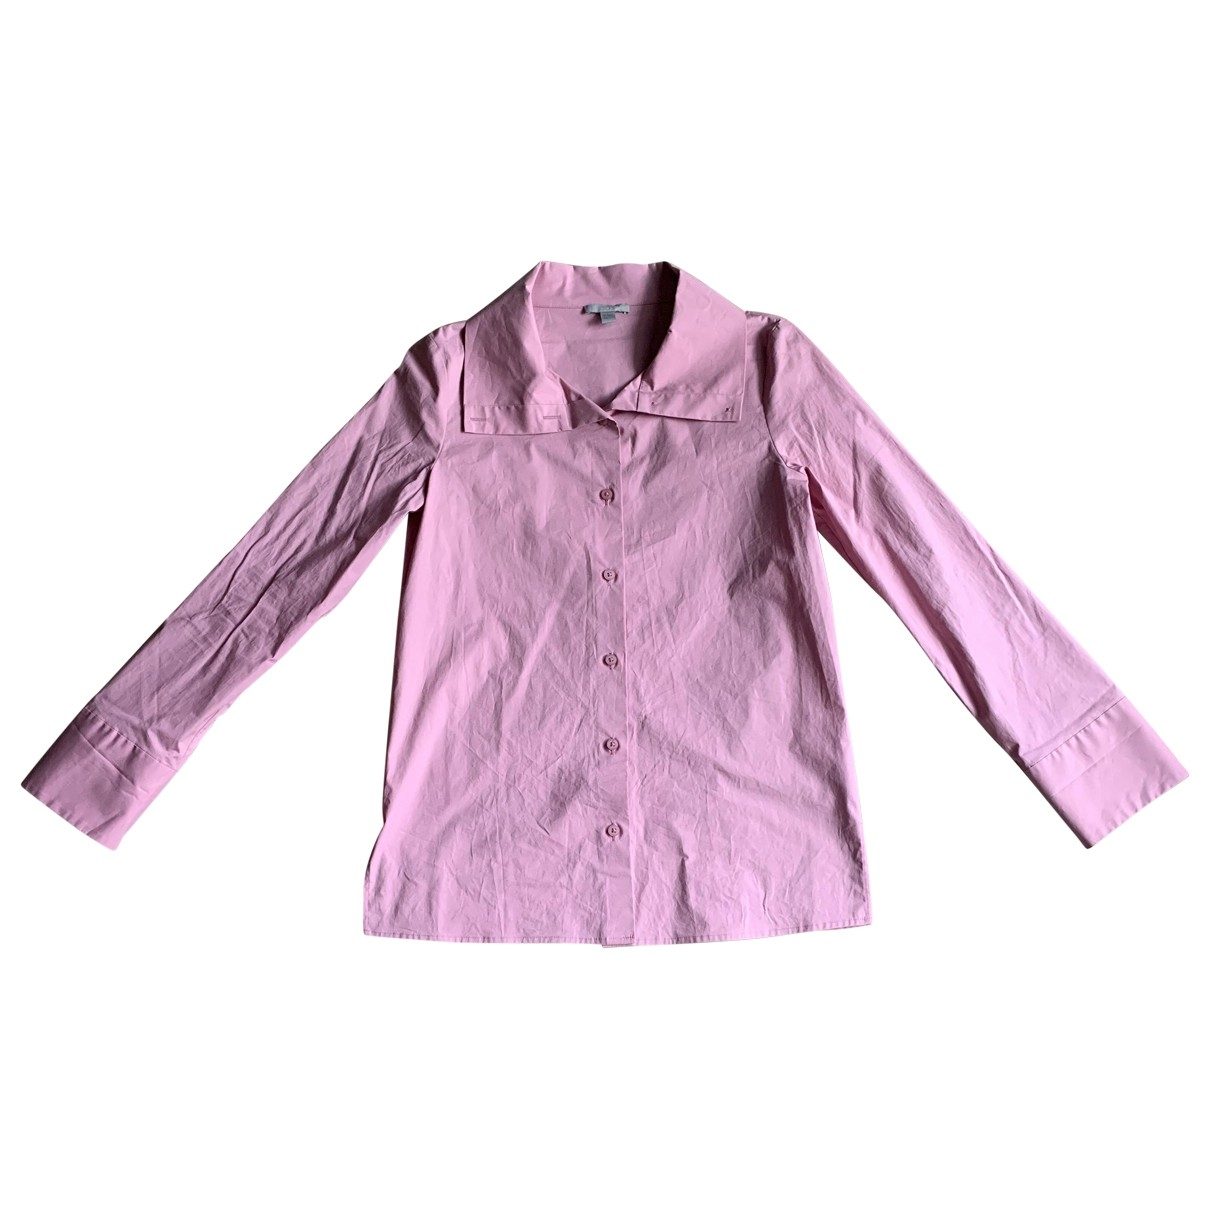 Cos \N Pink Cotton  top for Women 34 FR